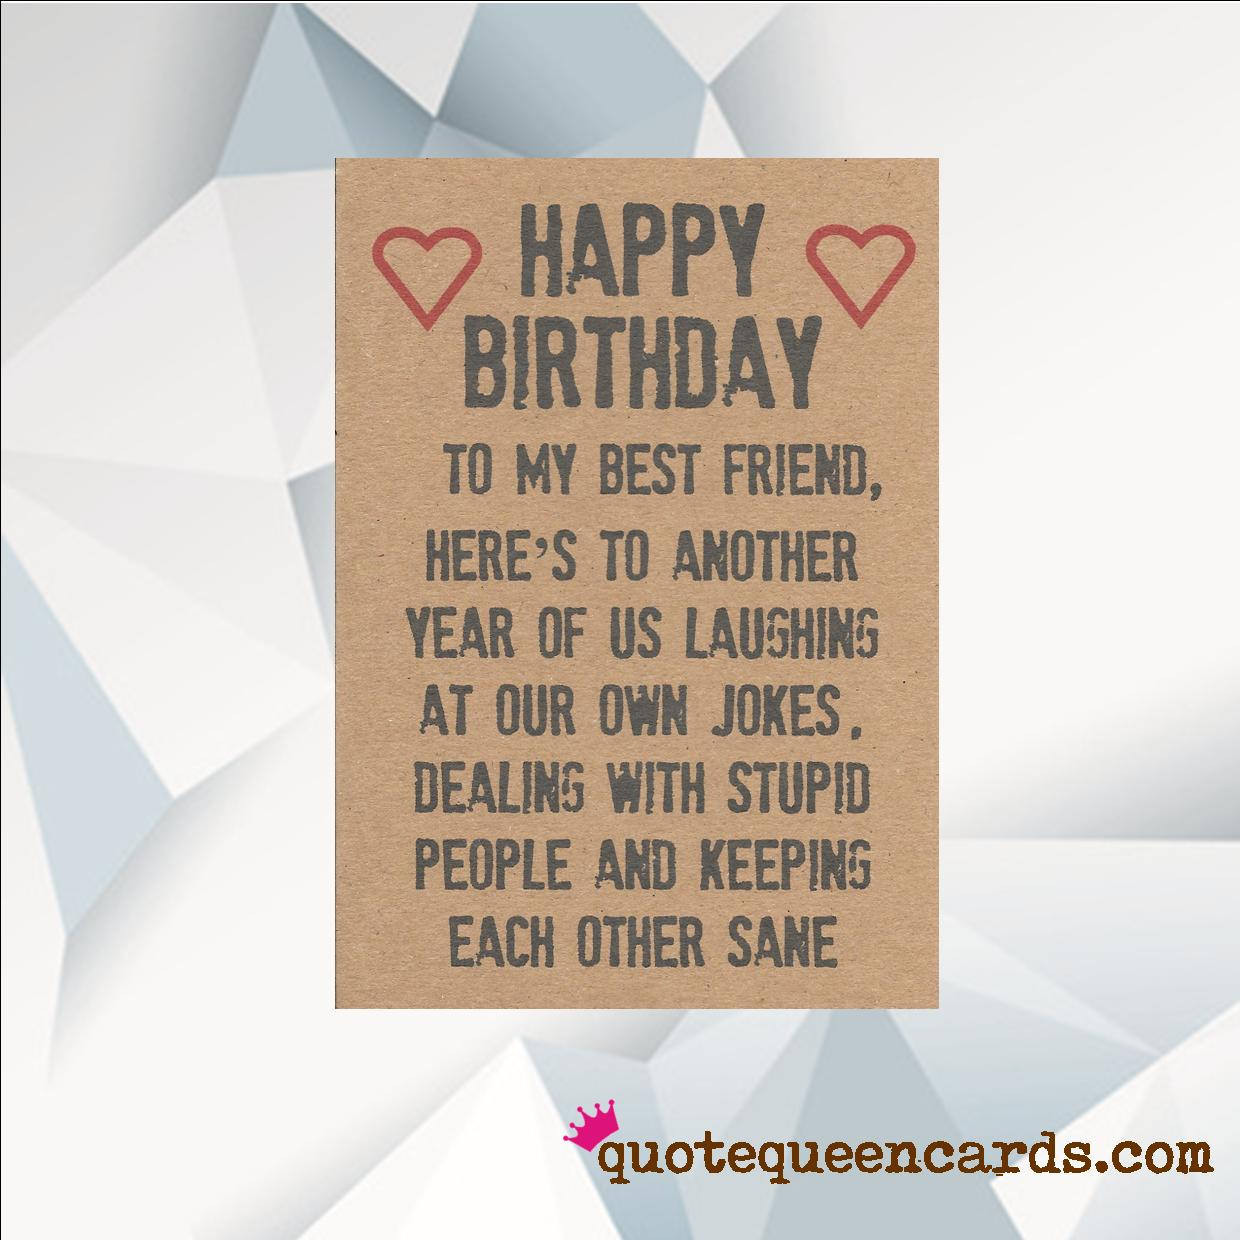 Happy Birthday Best Friend Funny  Happy Birthday BEST FRIEND Funny Birthday Card For Friend